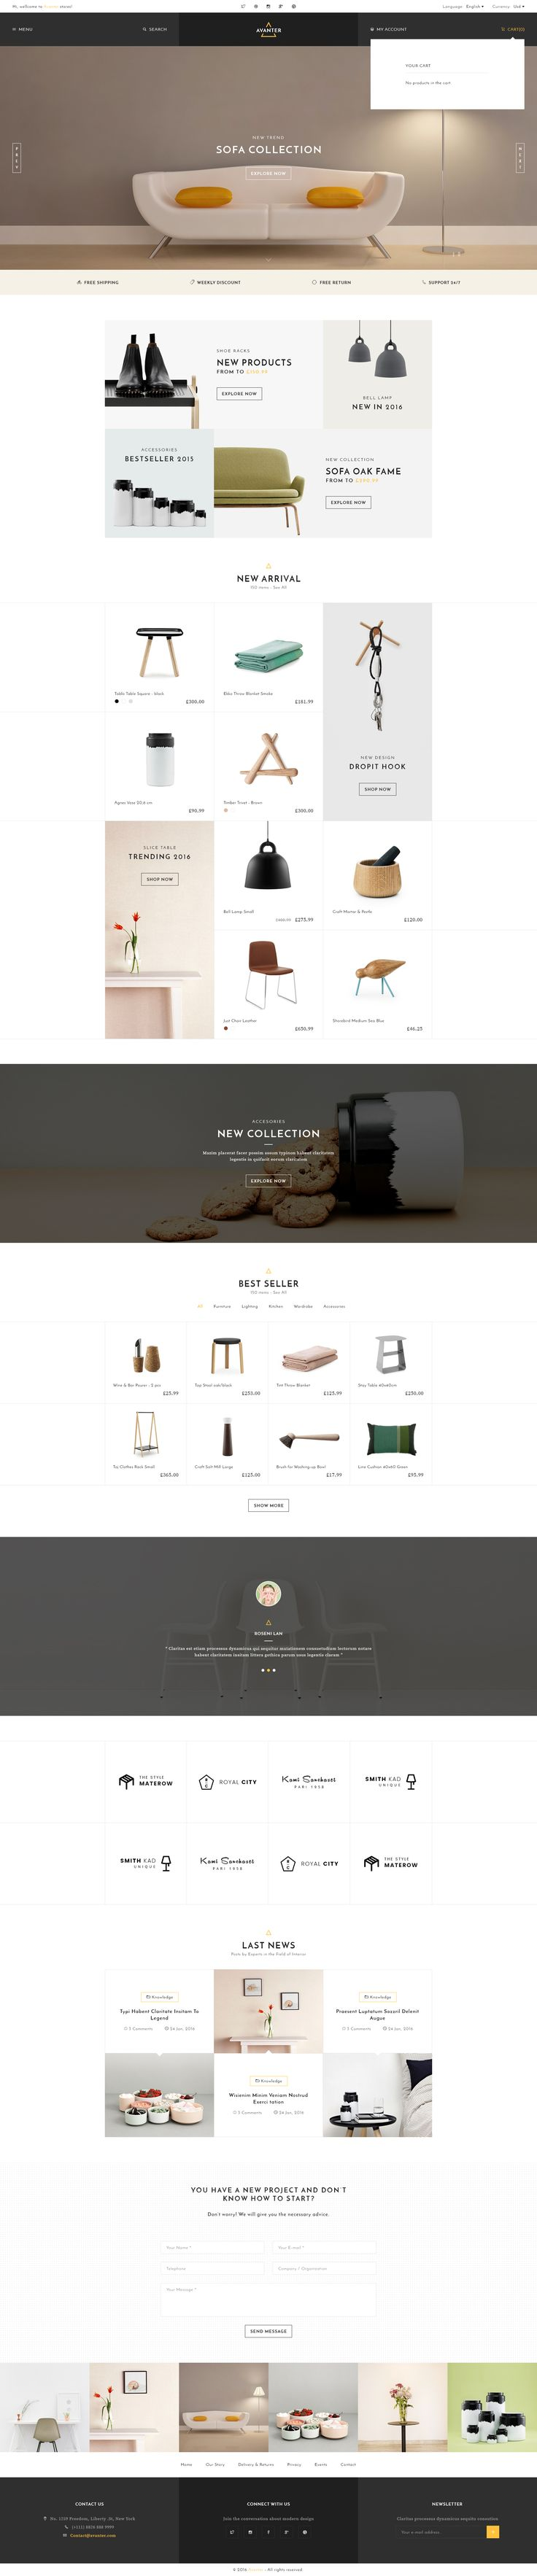 furniture design styles. avanter funiture store psd template app designdesign stylesweb furniture design styles s